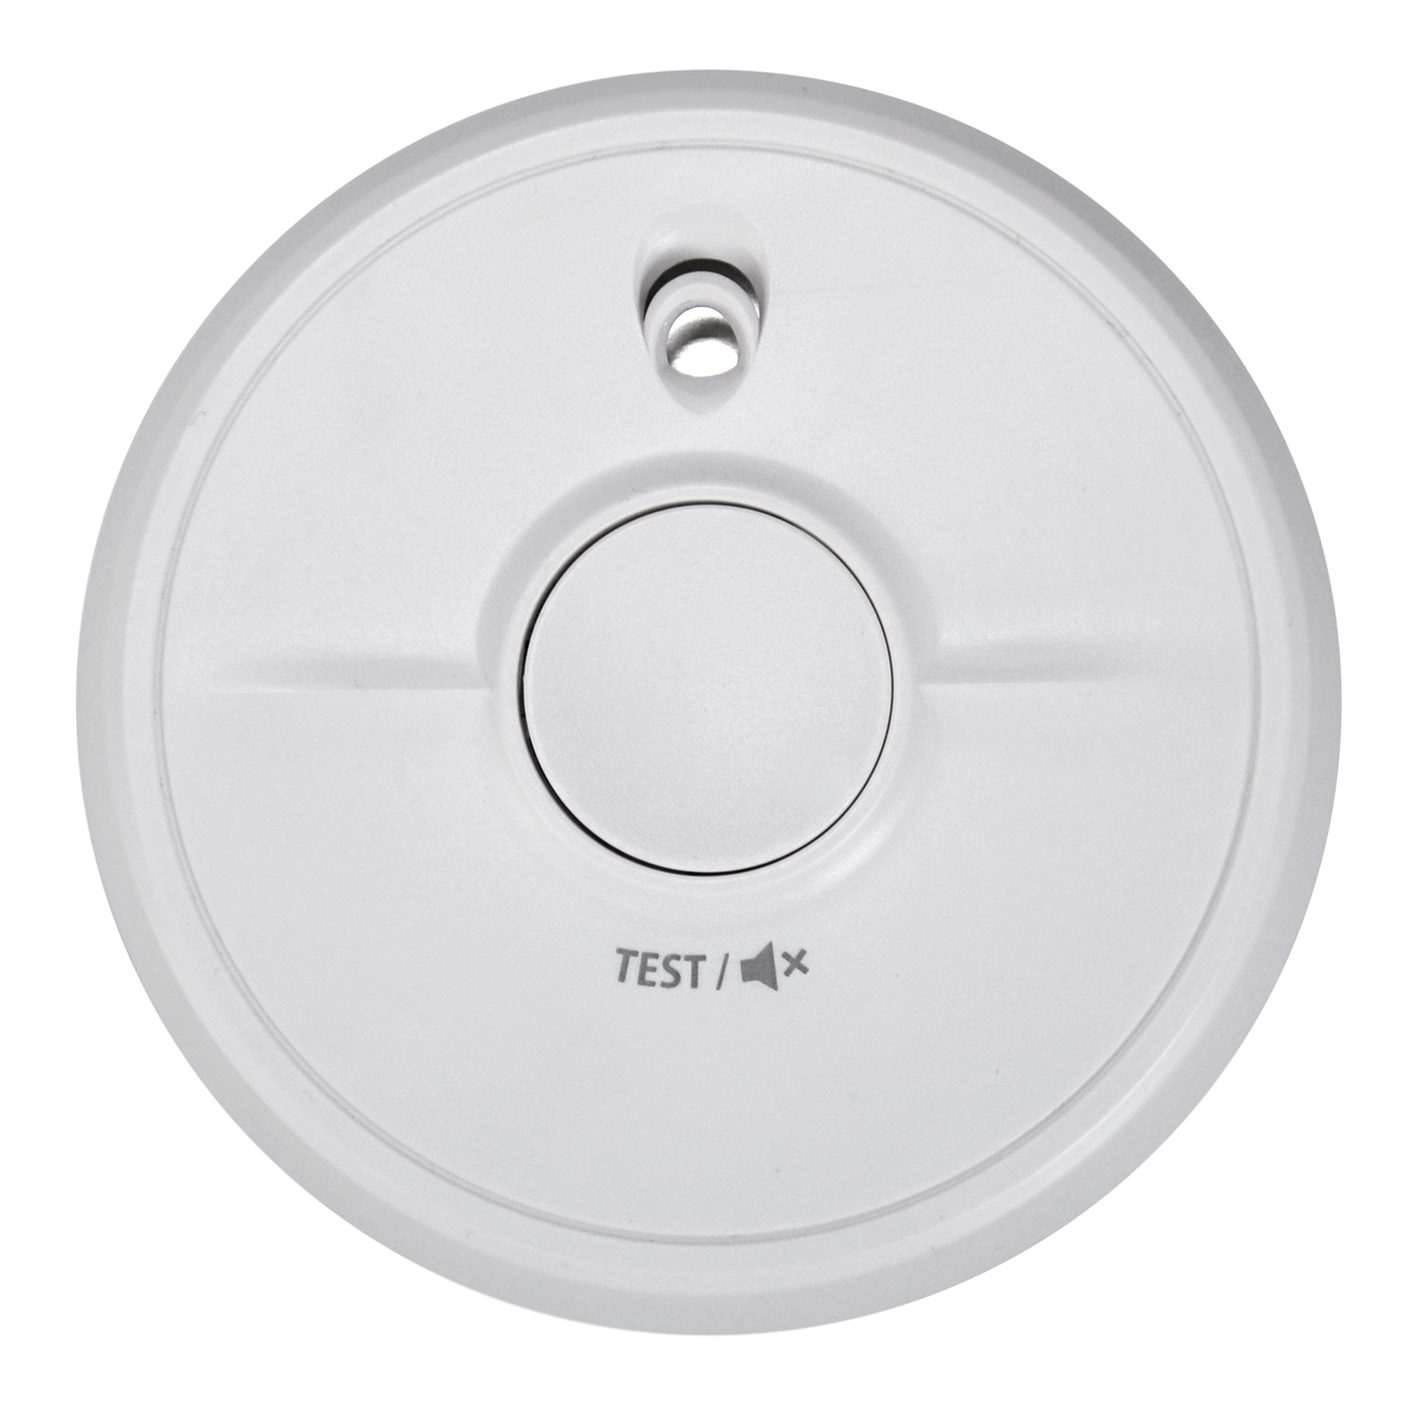 Fire Angel General Use Smoke Alarm with Silencer Button White Ref FT0013 Pack 2